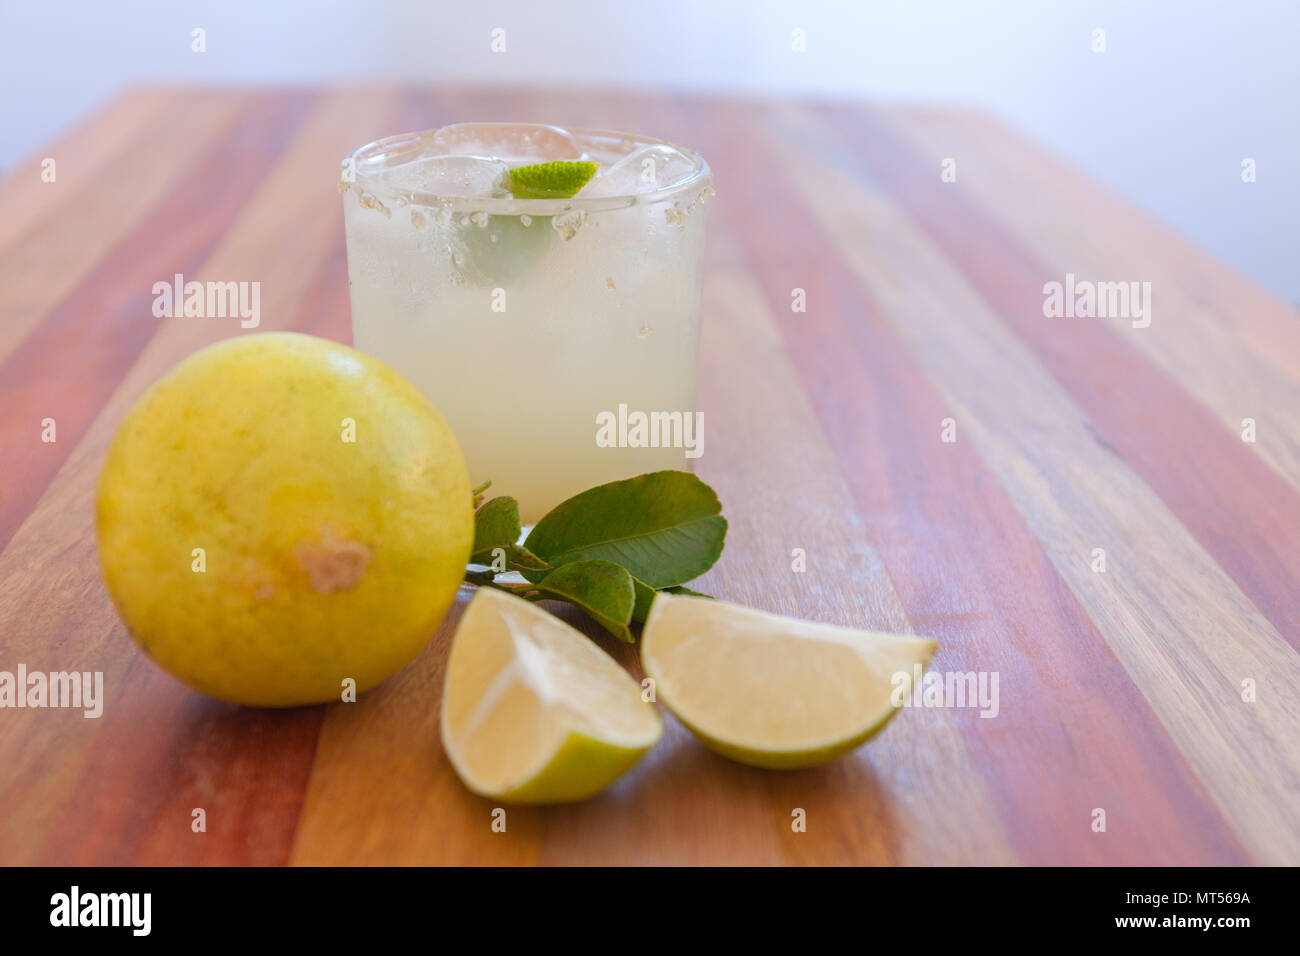 Key Lime margarita garnie de chaux fraîche dans un verre table bar Photo Stock